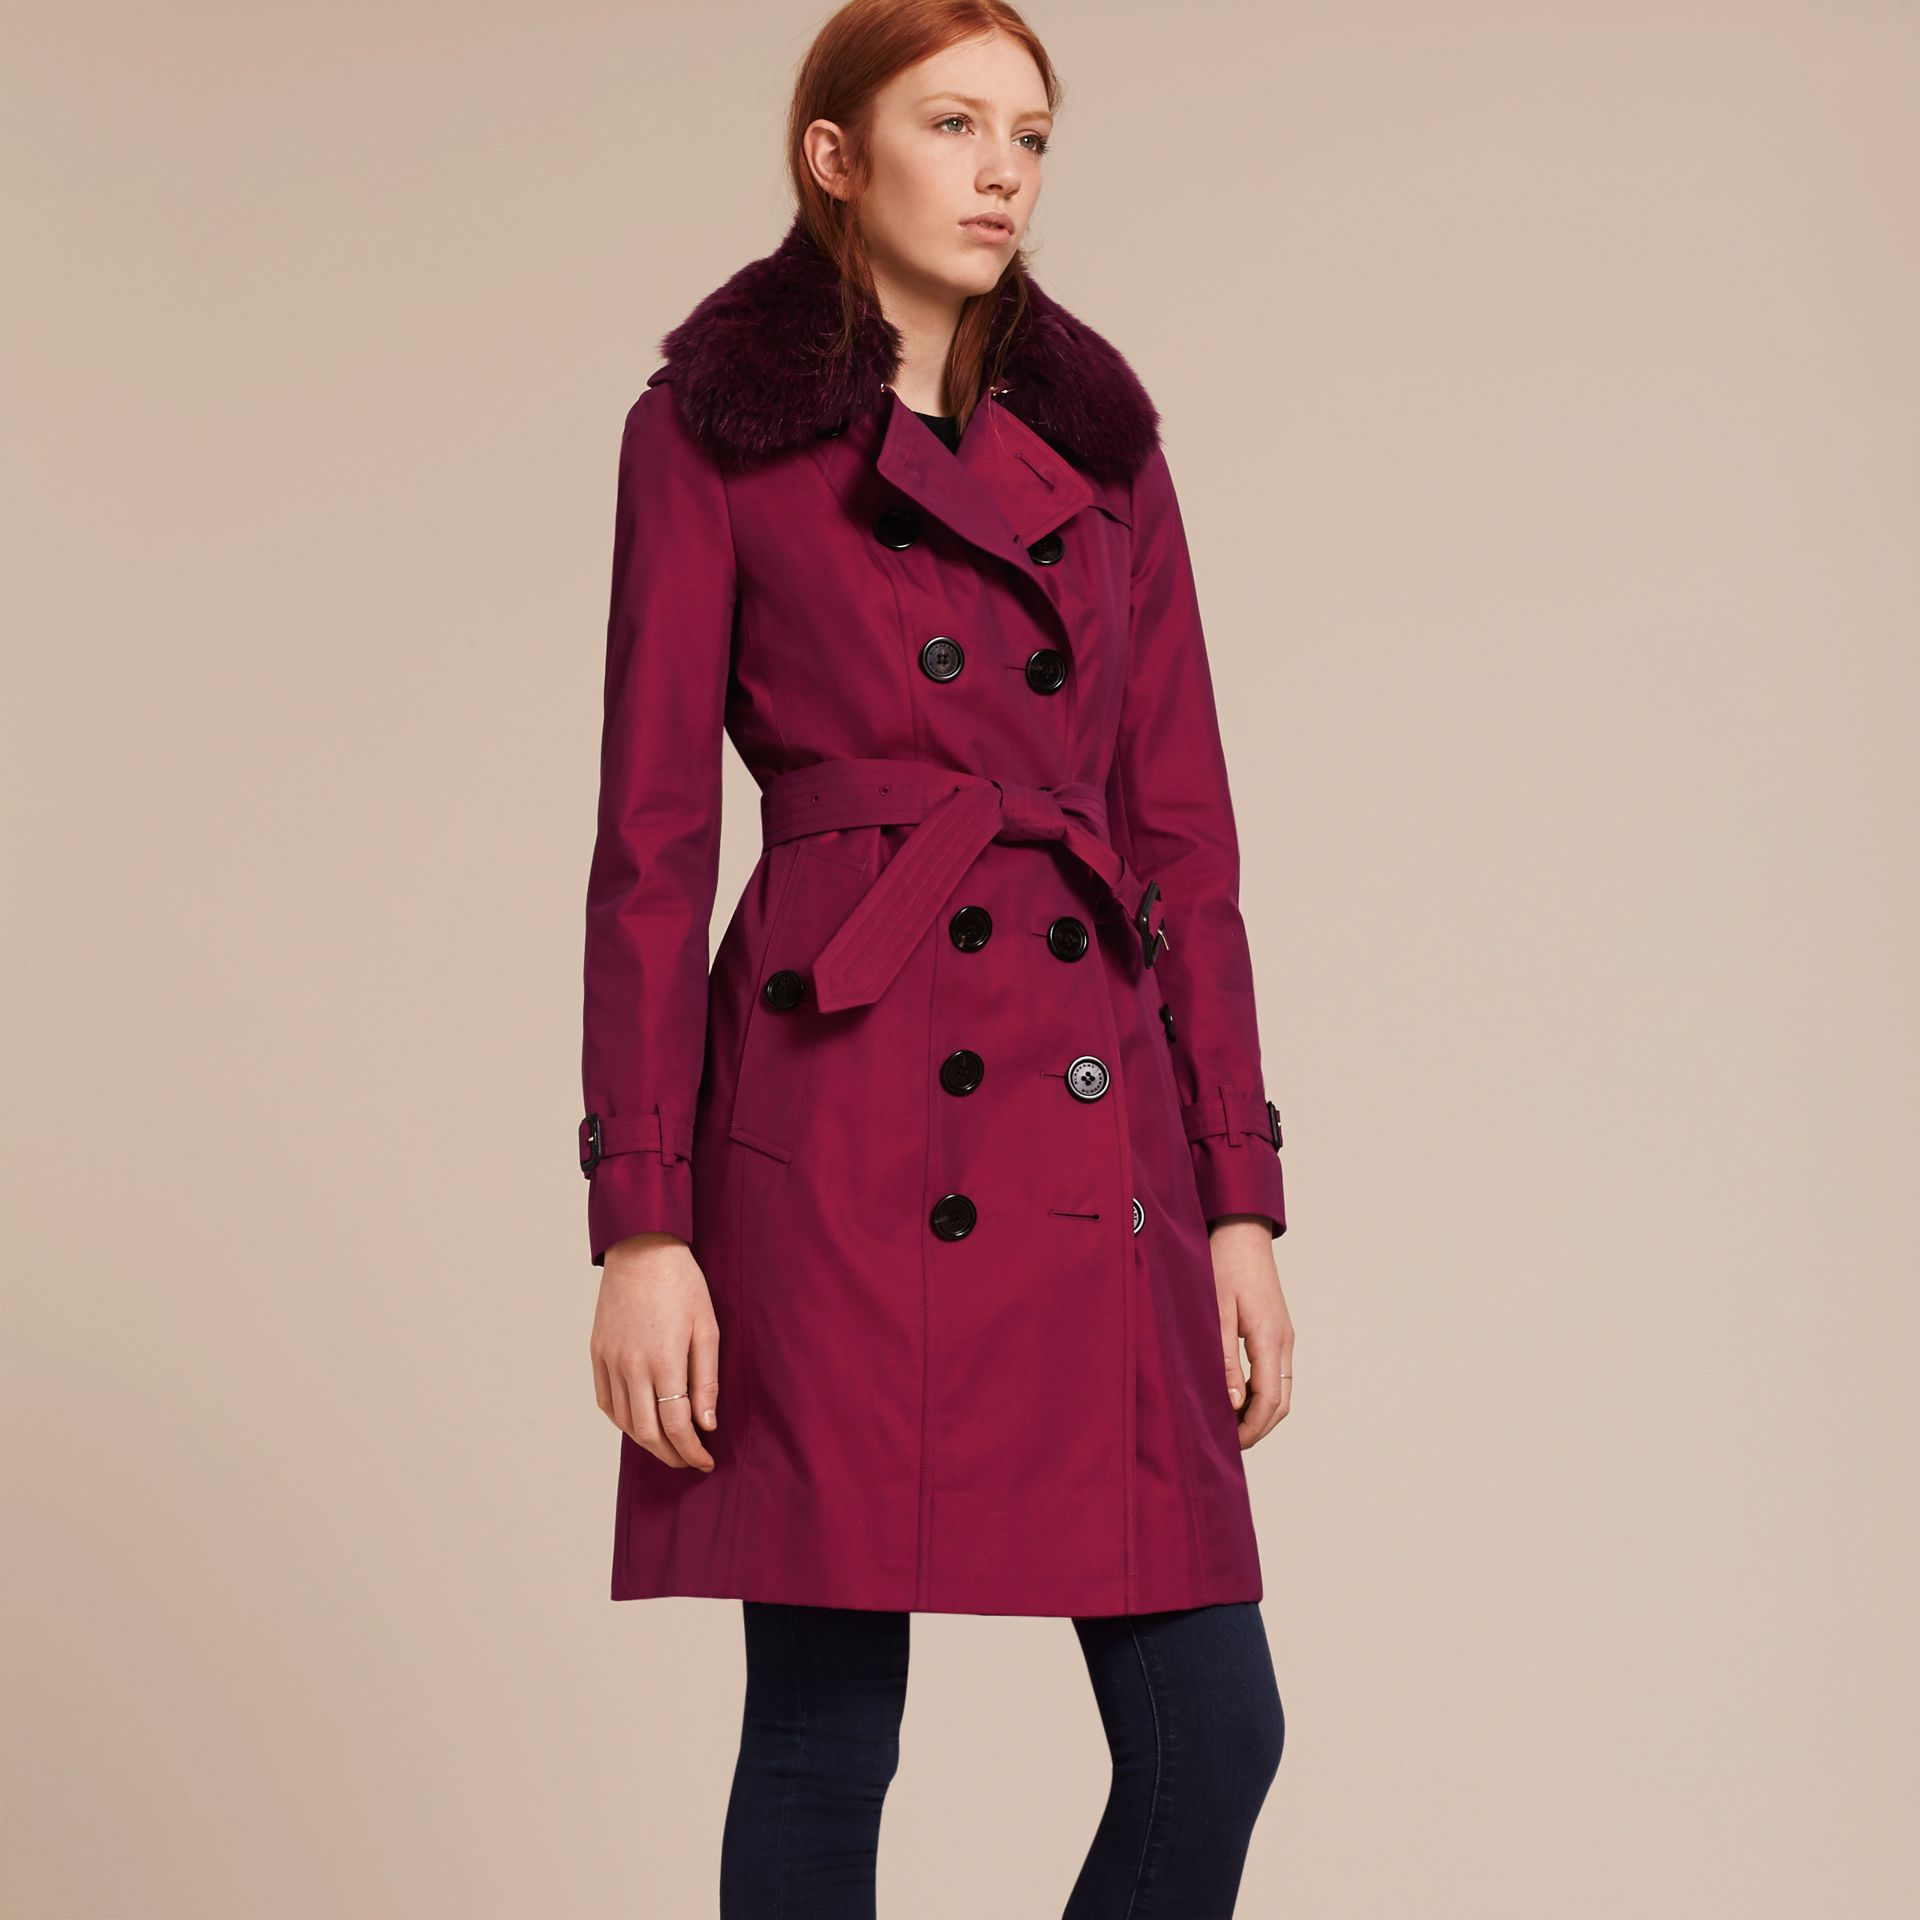 Crimson Cotton Gabardine Trench Coat with Detachable Fur Trim Crimson - gallery image 7